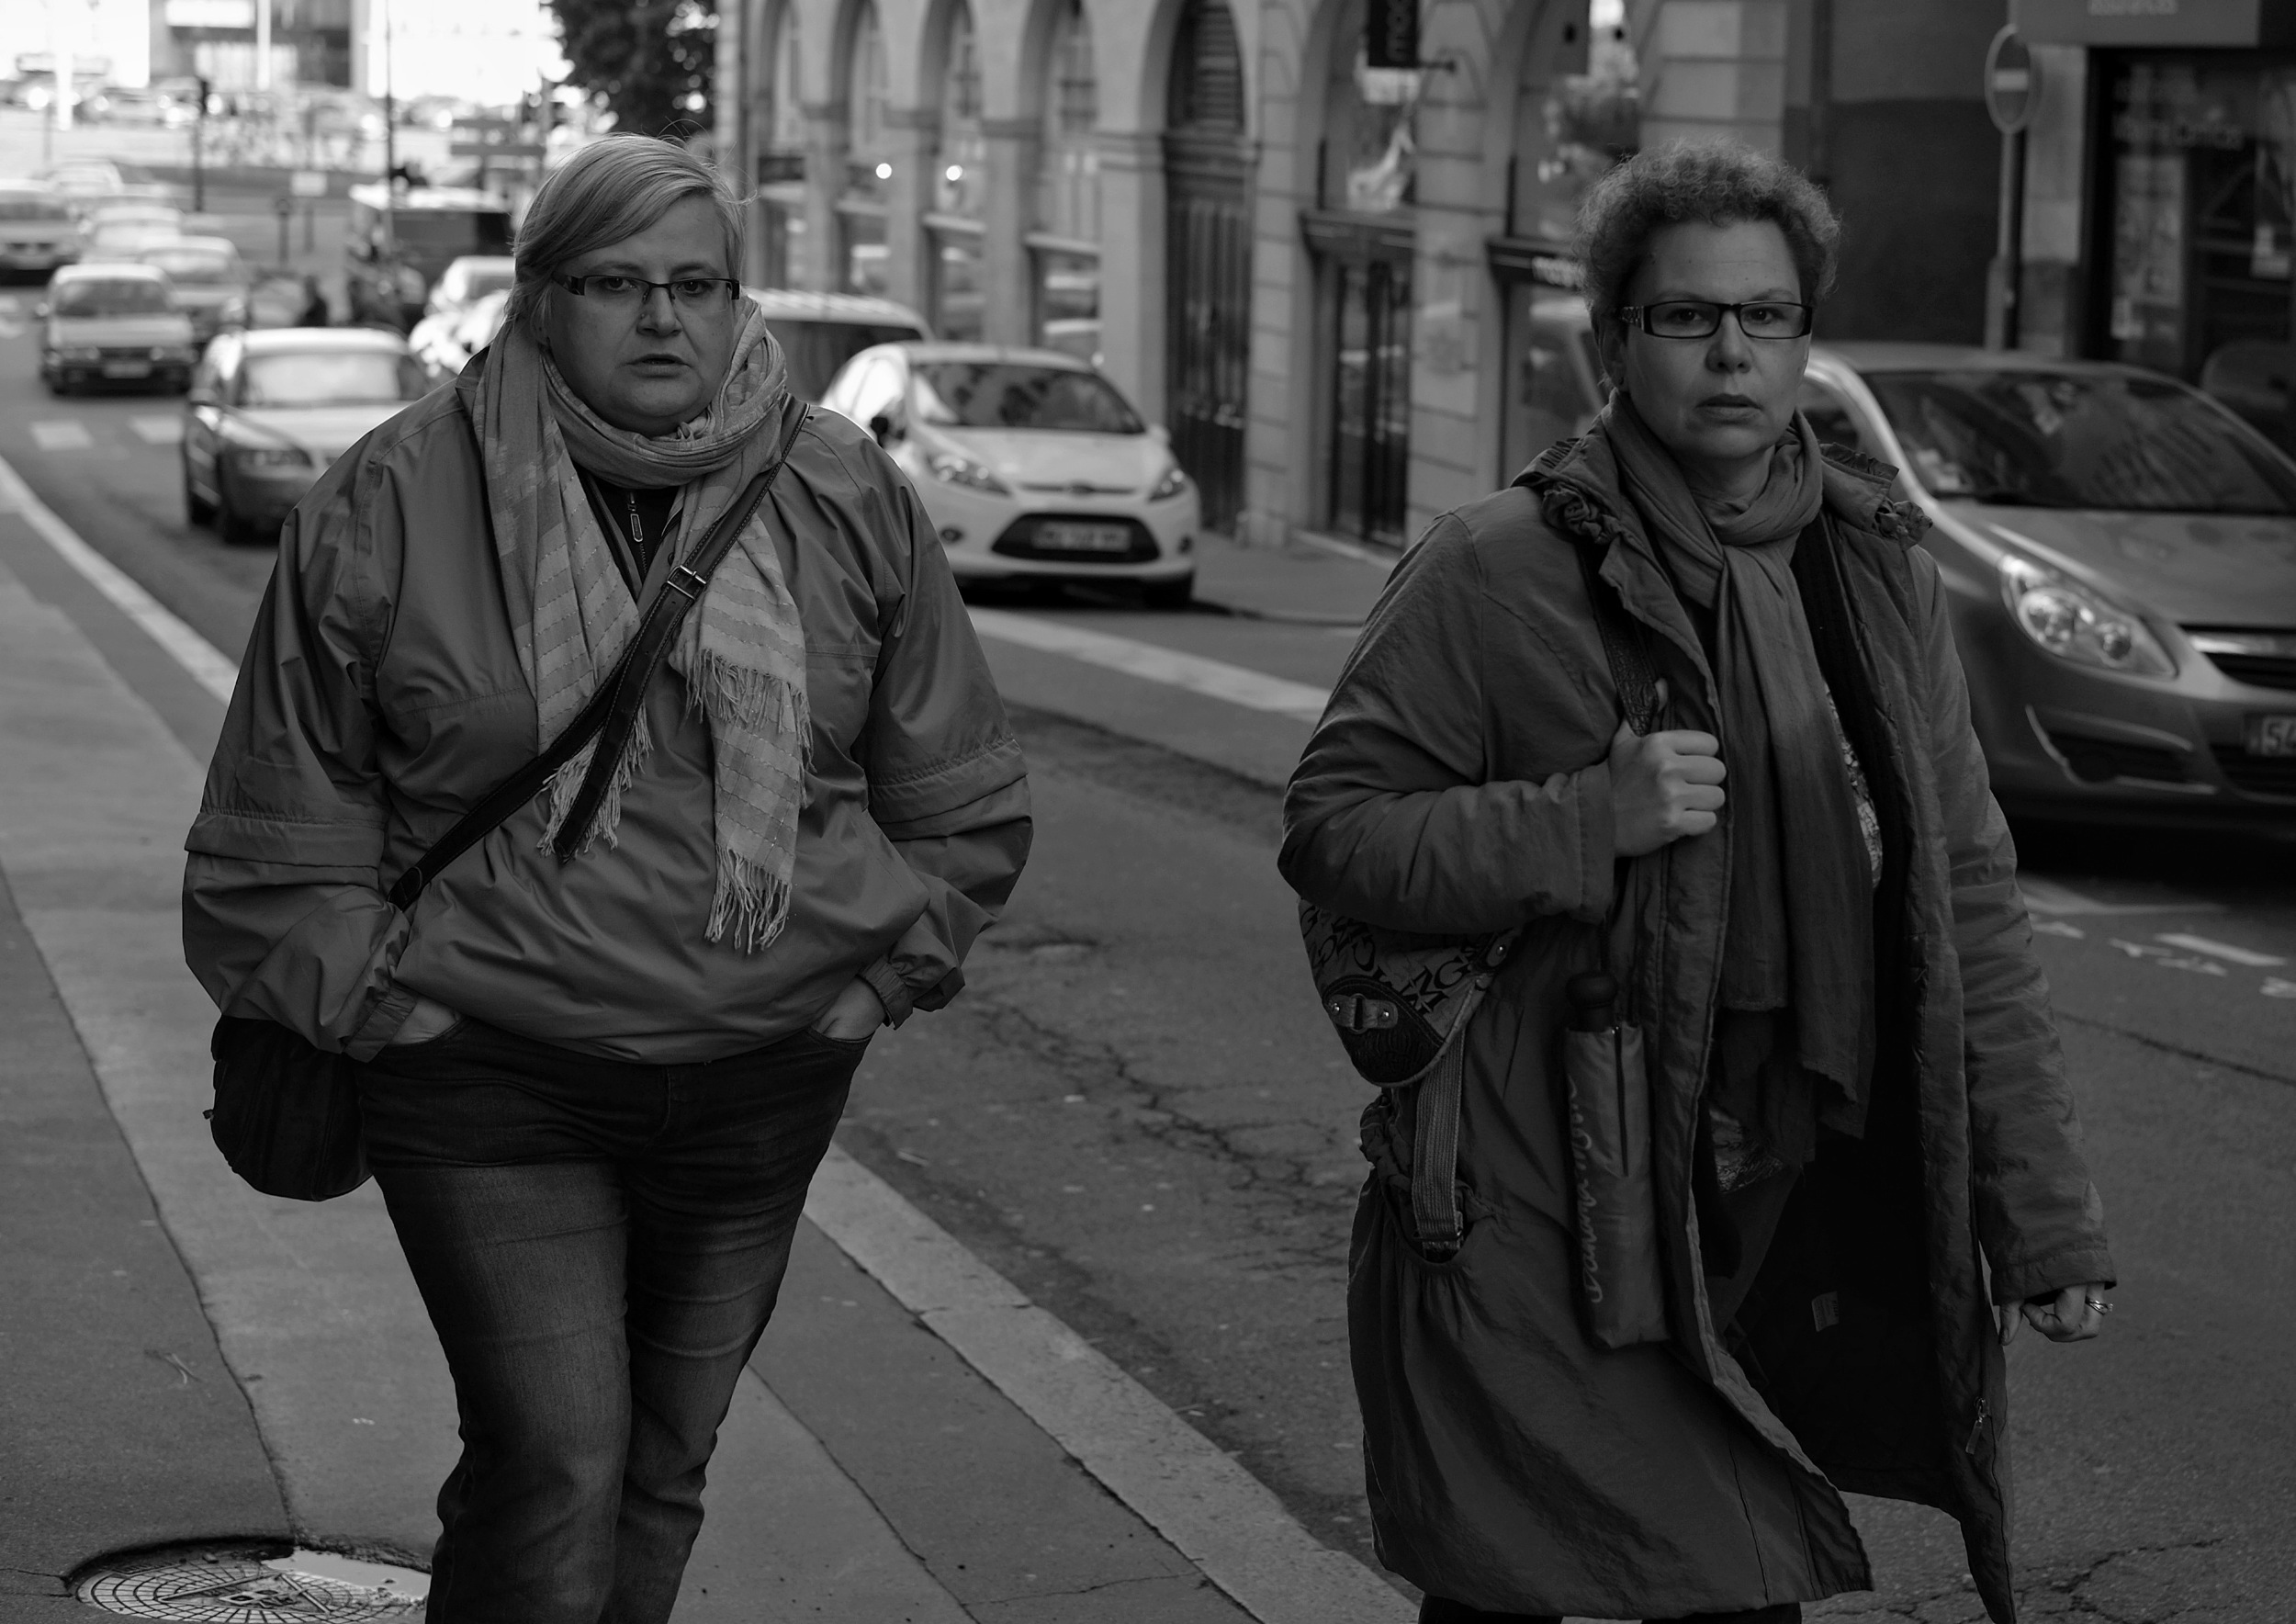 Women walking in Nantes - Fuji X-Pro1